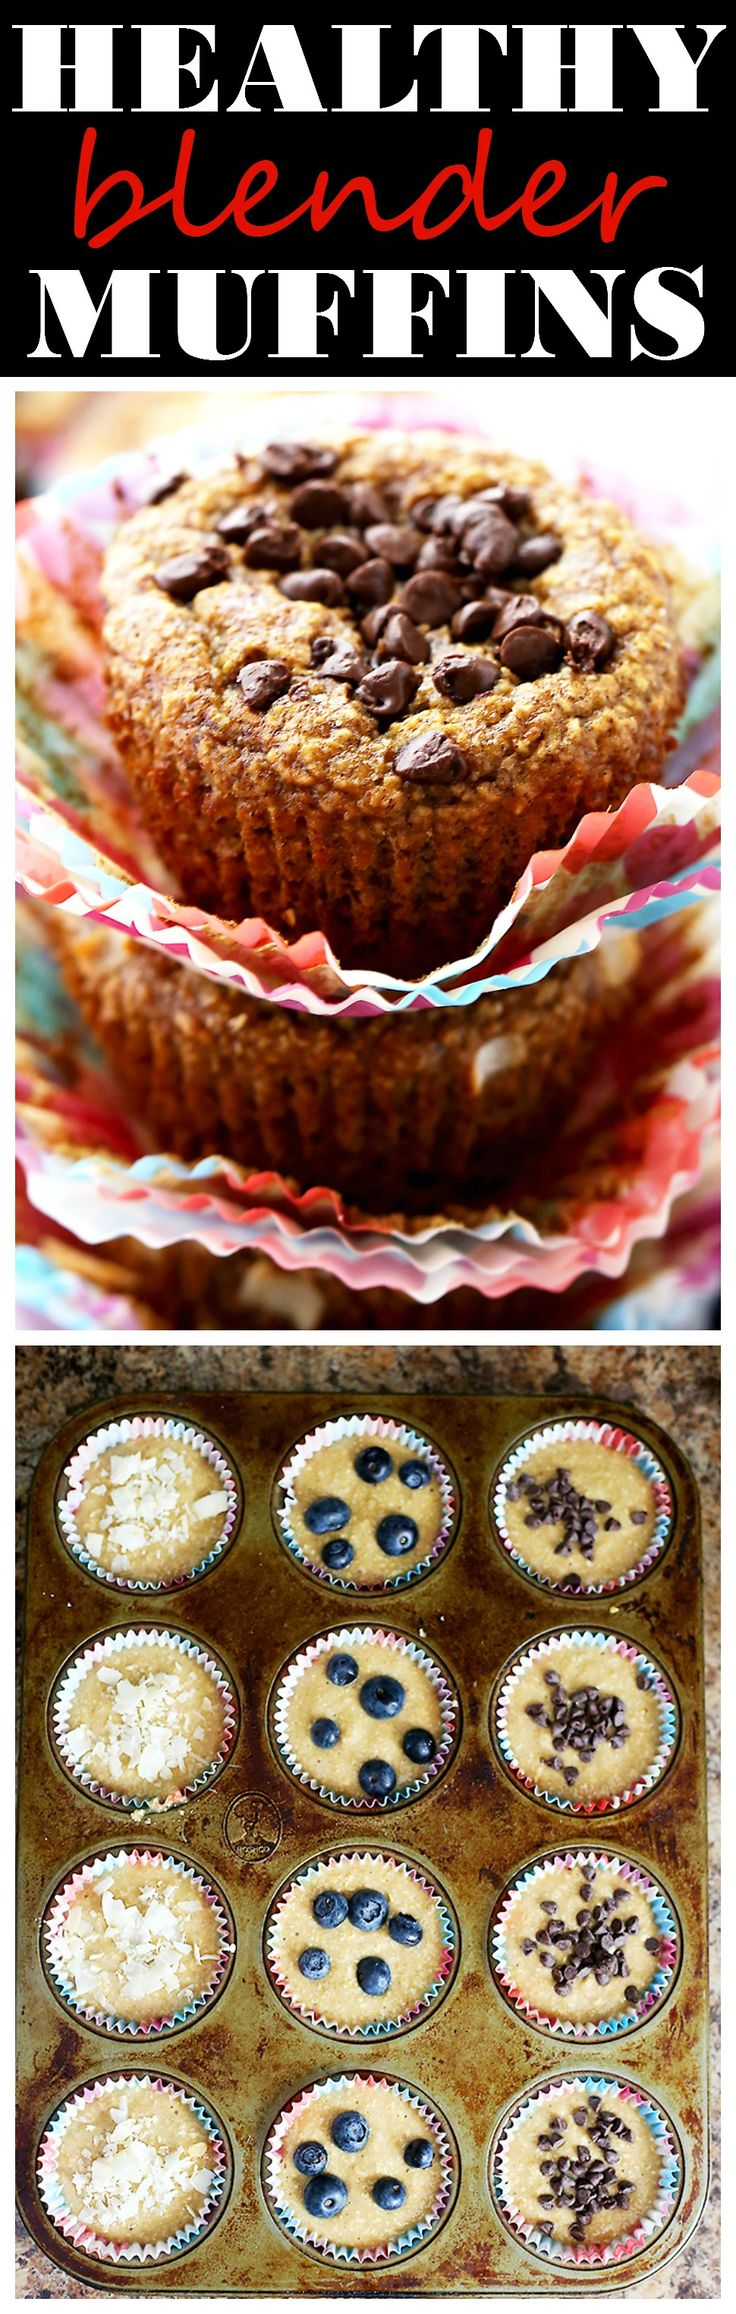 Healthy Flourless Blender Muffins –  Super soft and healthy muffins packed with oats and bananas, and whipped up in the blender. SO delicious, you won't believe they are under 110 calories each!